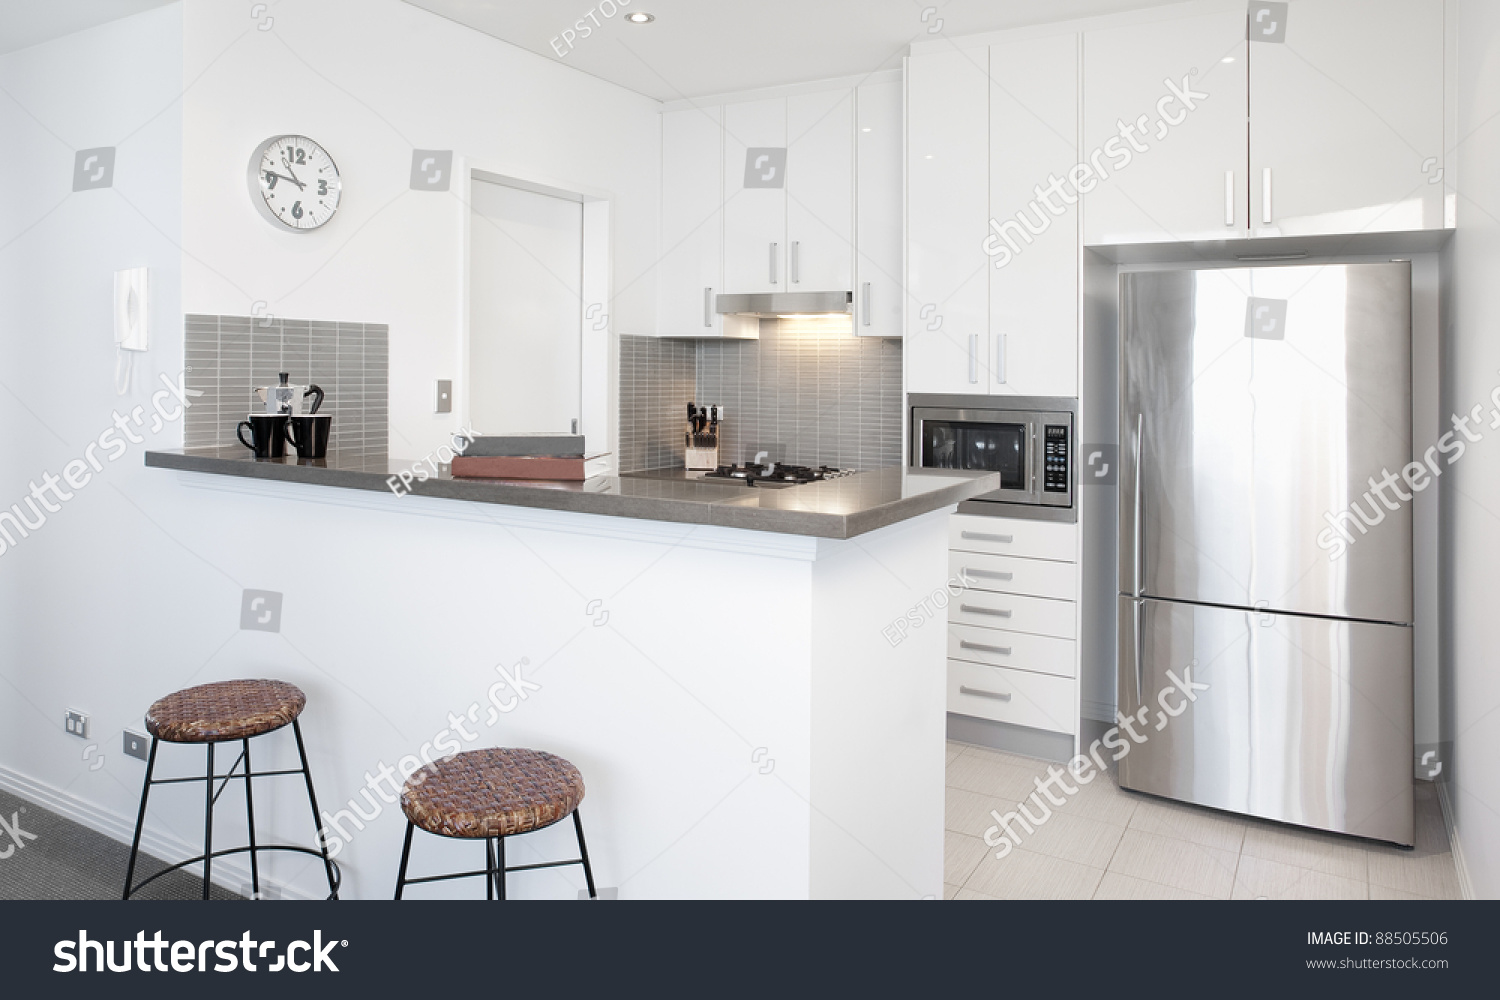 Modern white kitchen in apartment with polished stainless steel appliances stock photo 88505506 - Modern kitchen with white appliances ...